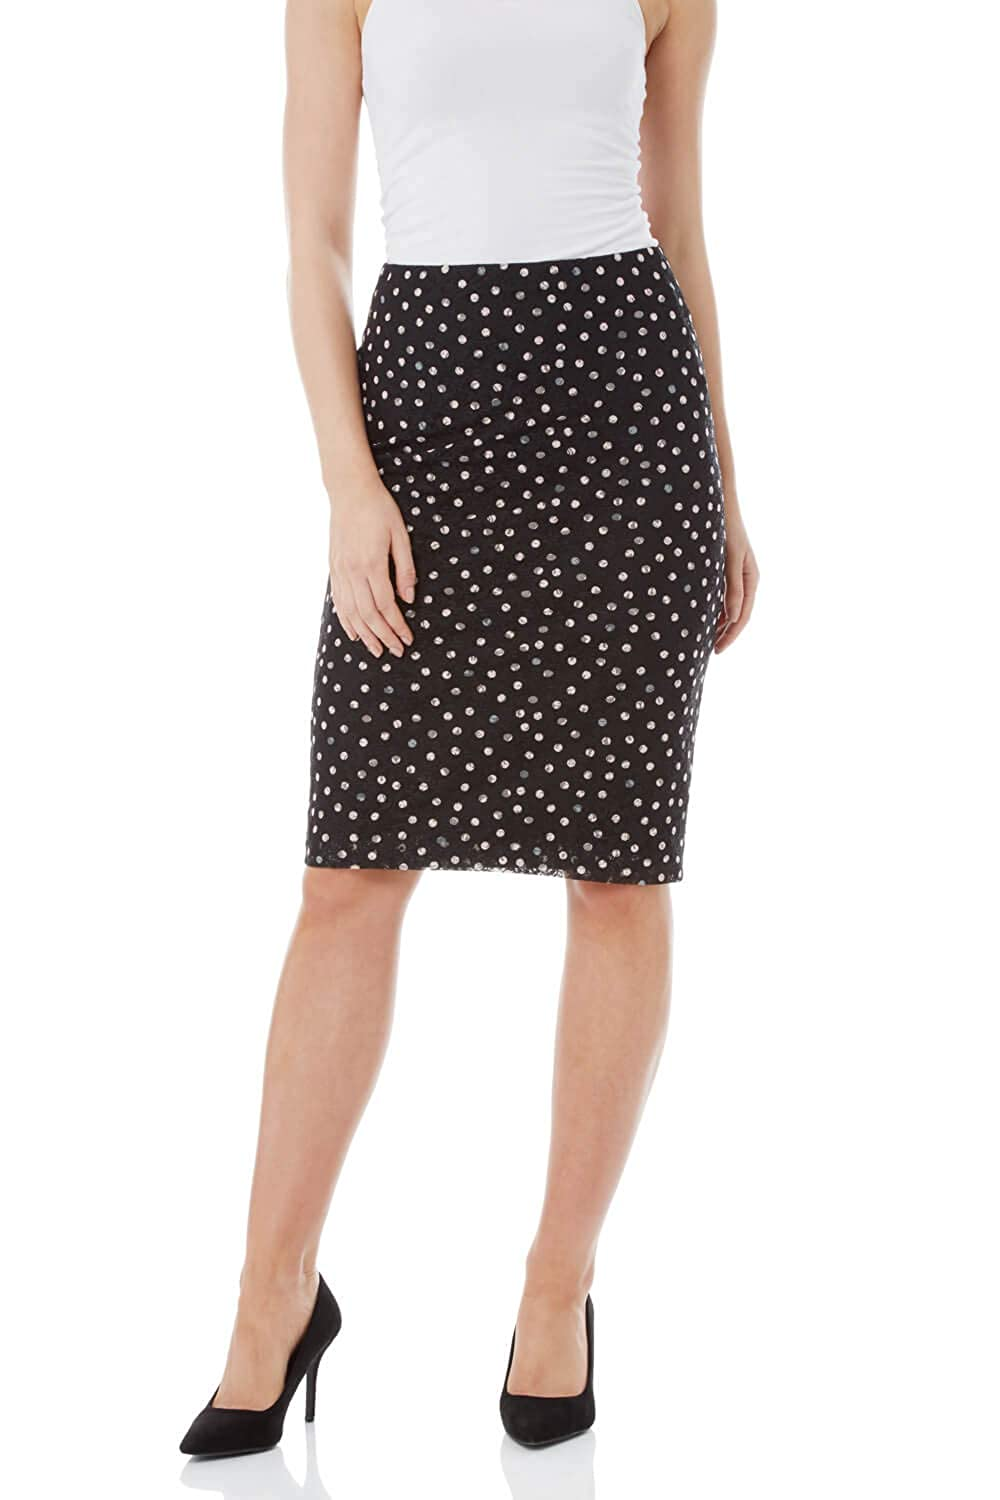 Roman Originals Women Lace Spot Pencil Skirt - Ladies Regular Waist Knee Length Midi Jersey Smart Casual Work Office Stretchy Elasticated Waist Going Out Tube Skirts with Zip Black 17000608